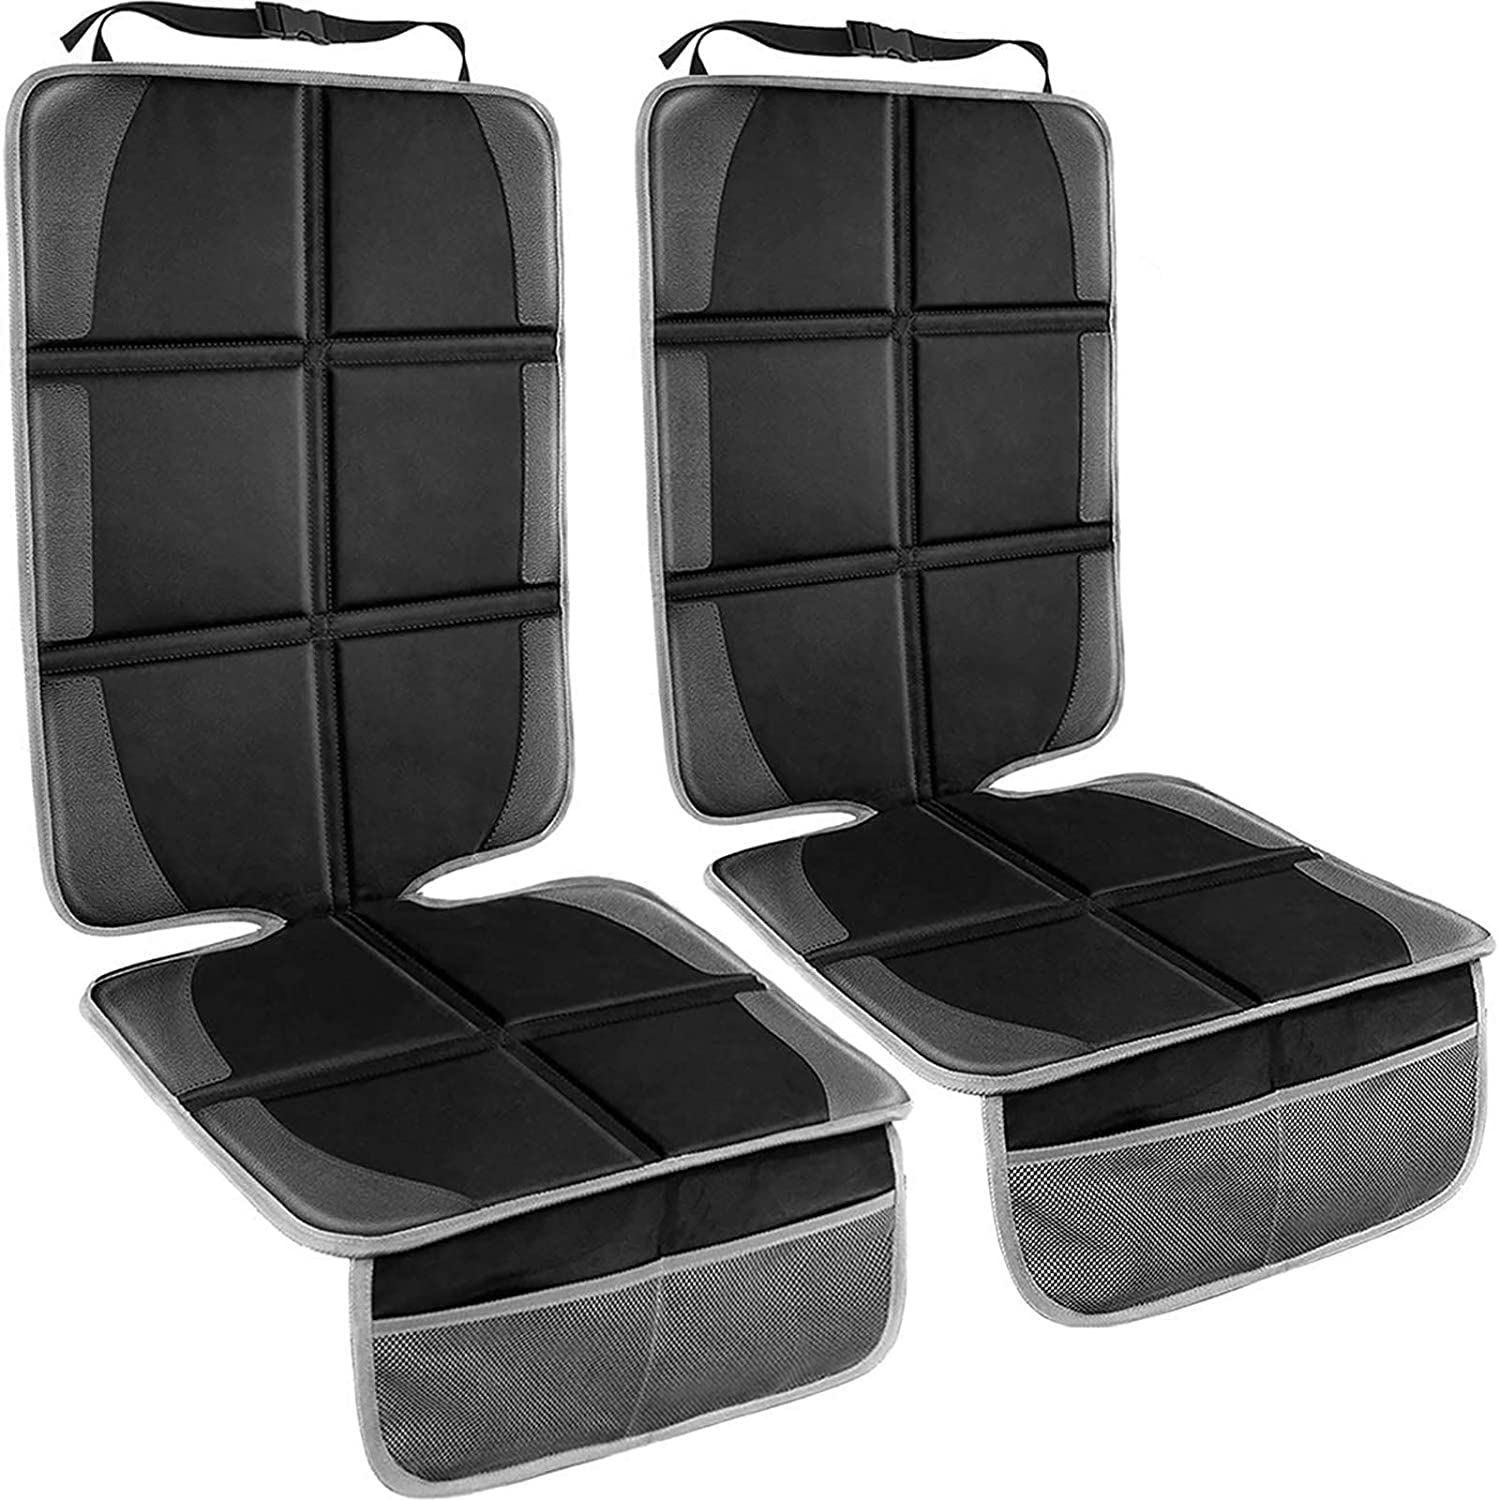 Seat Protector for Car Seats